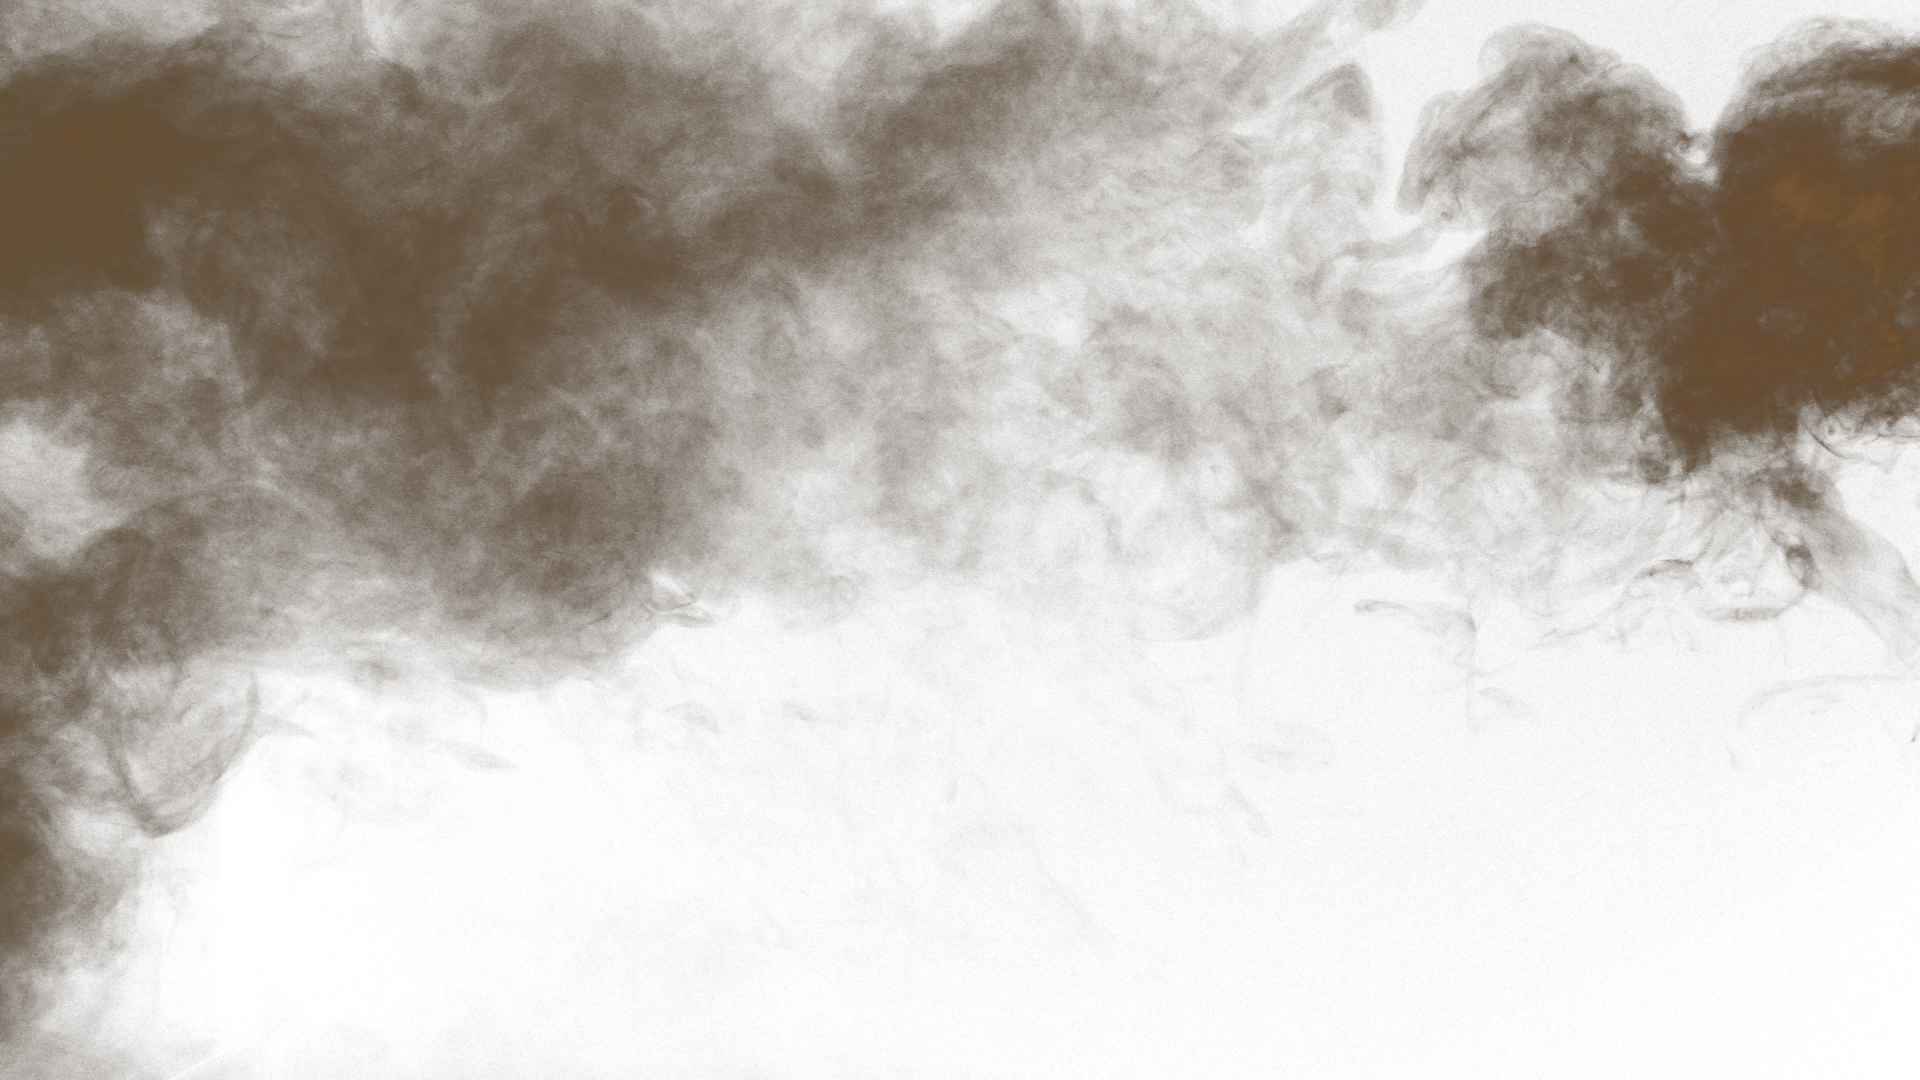 Dirty Fog transparent PNG.